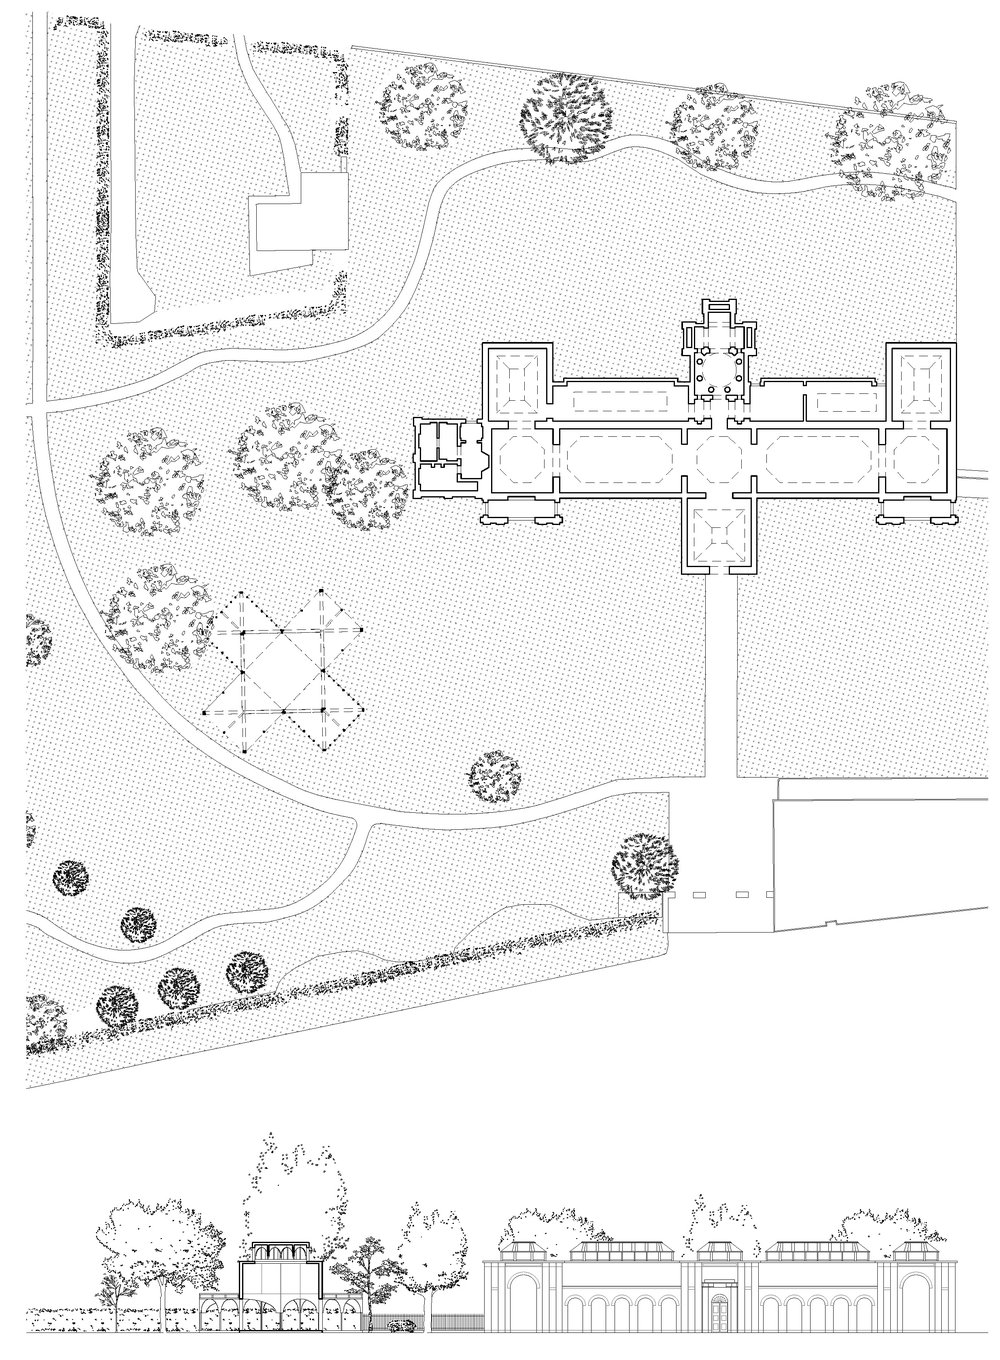 site plan and section.jpg